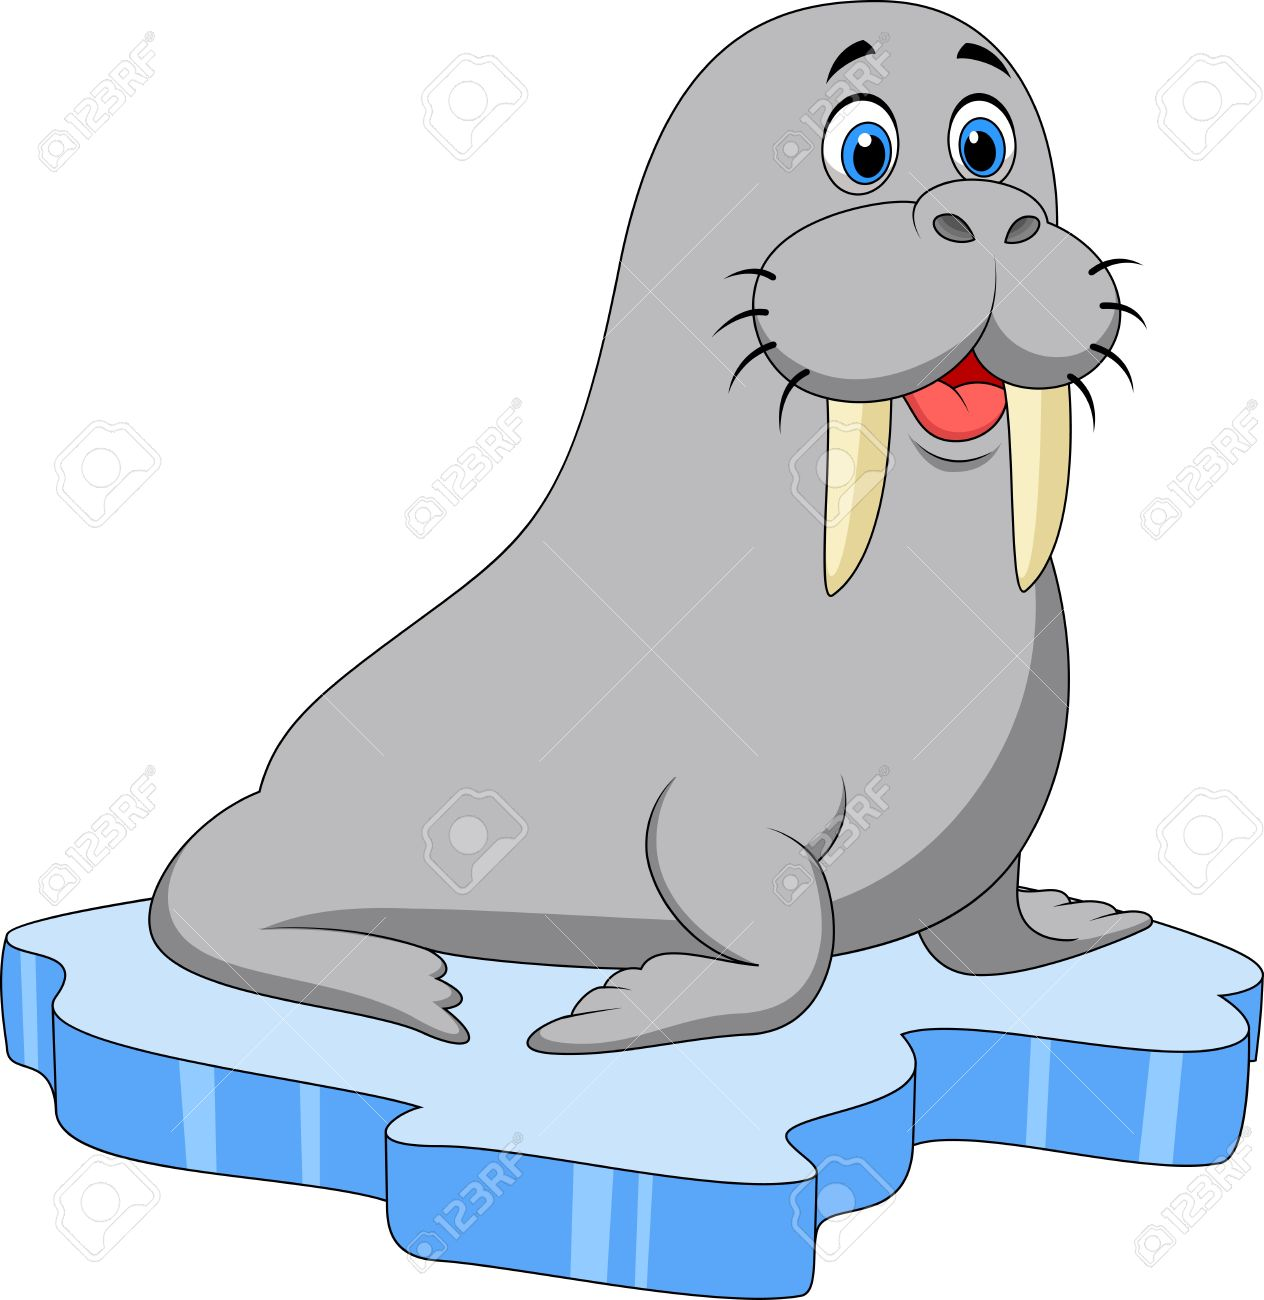 234 Walrus free clipart.